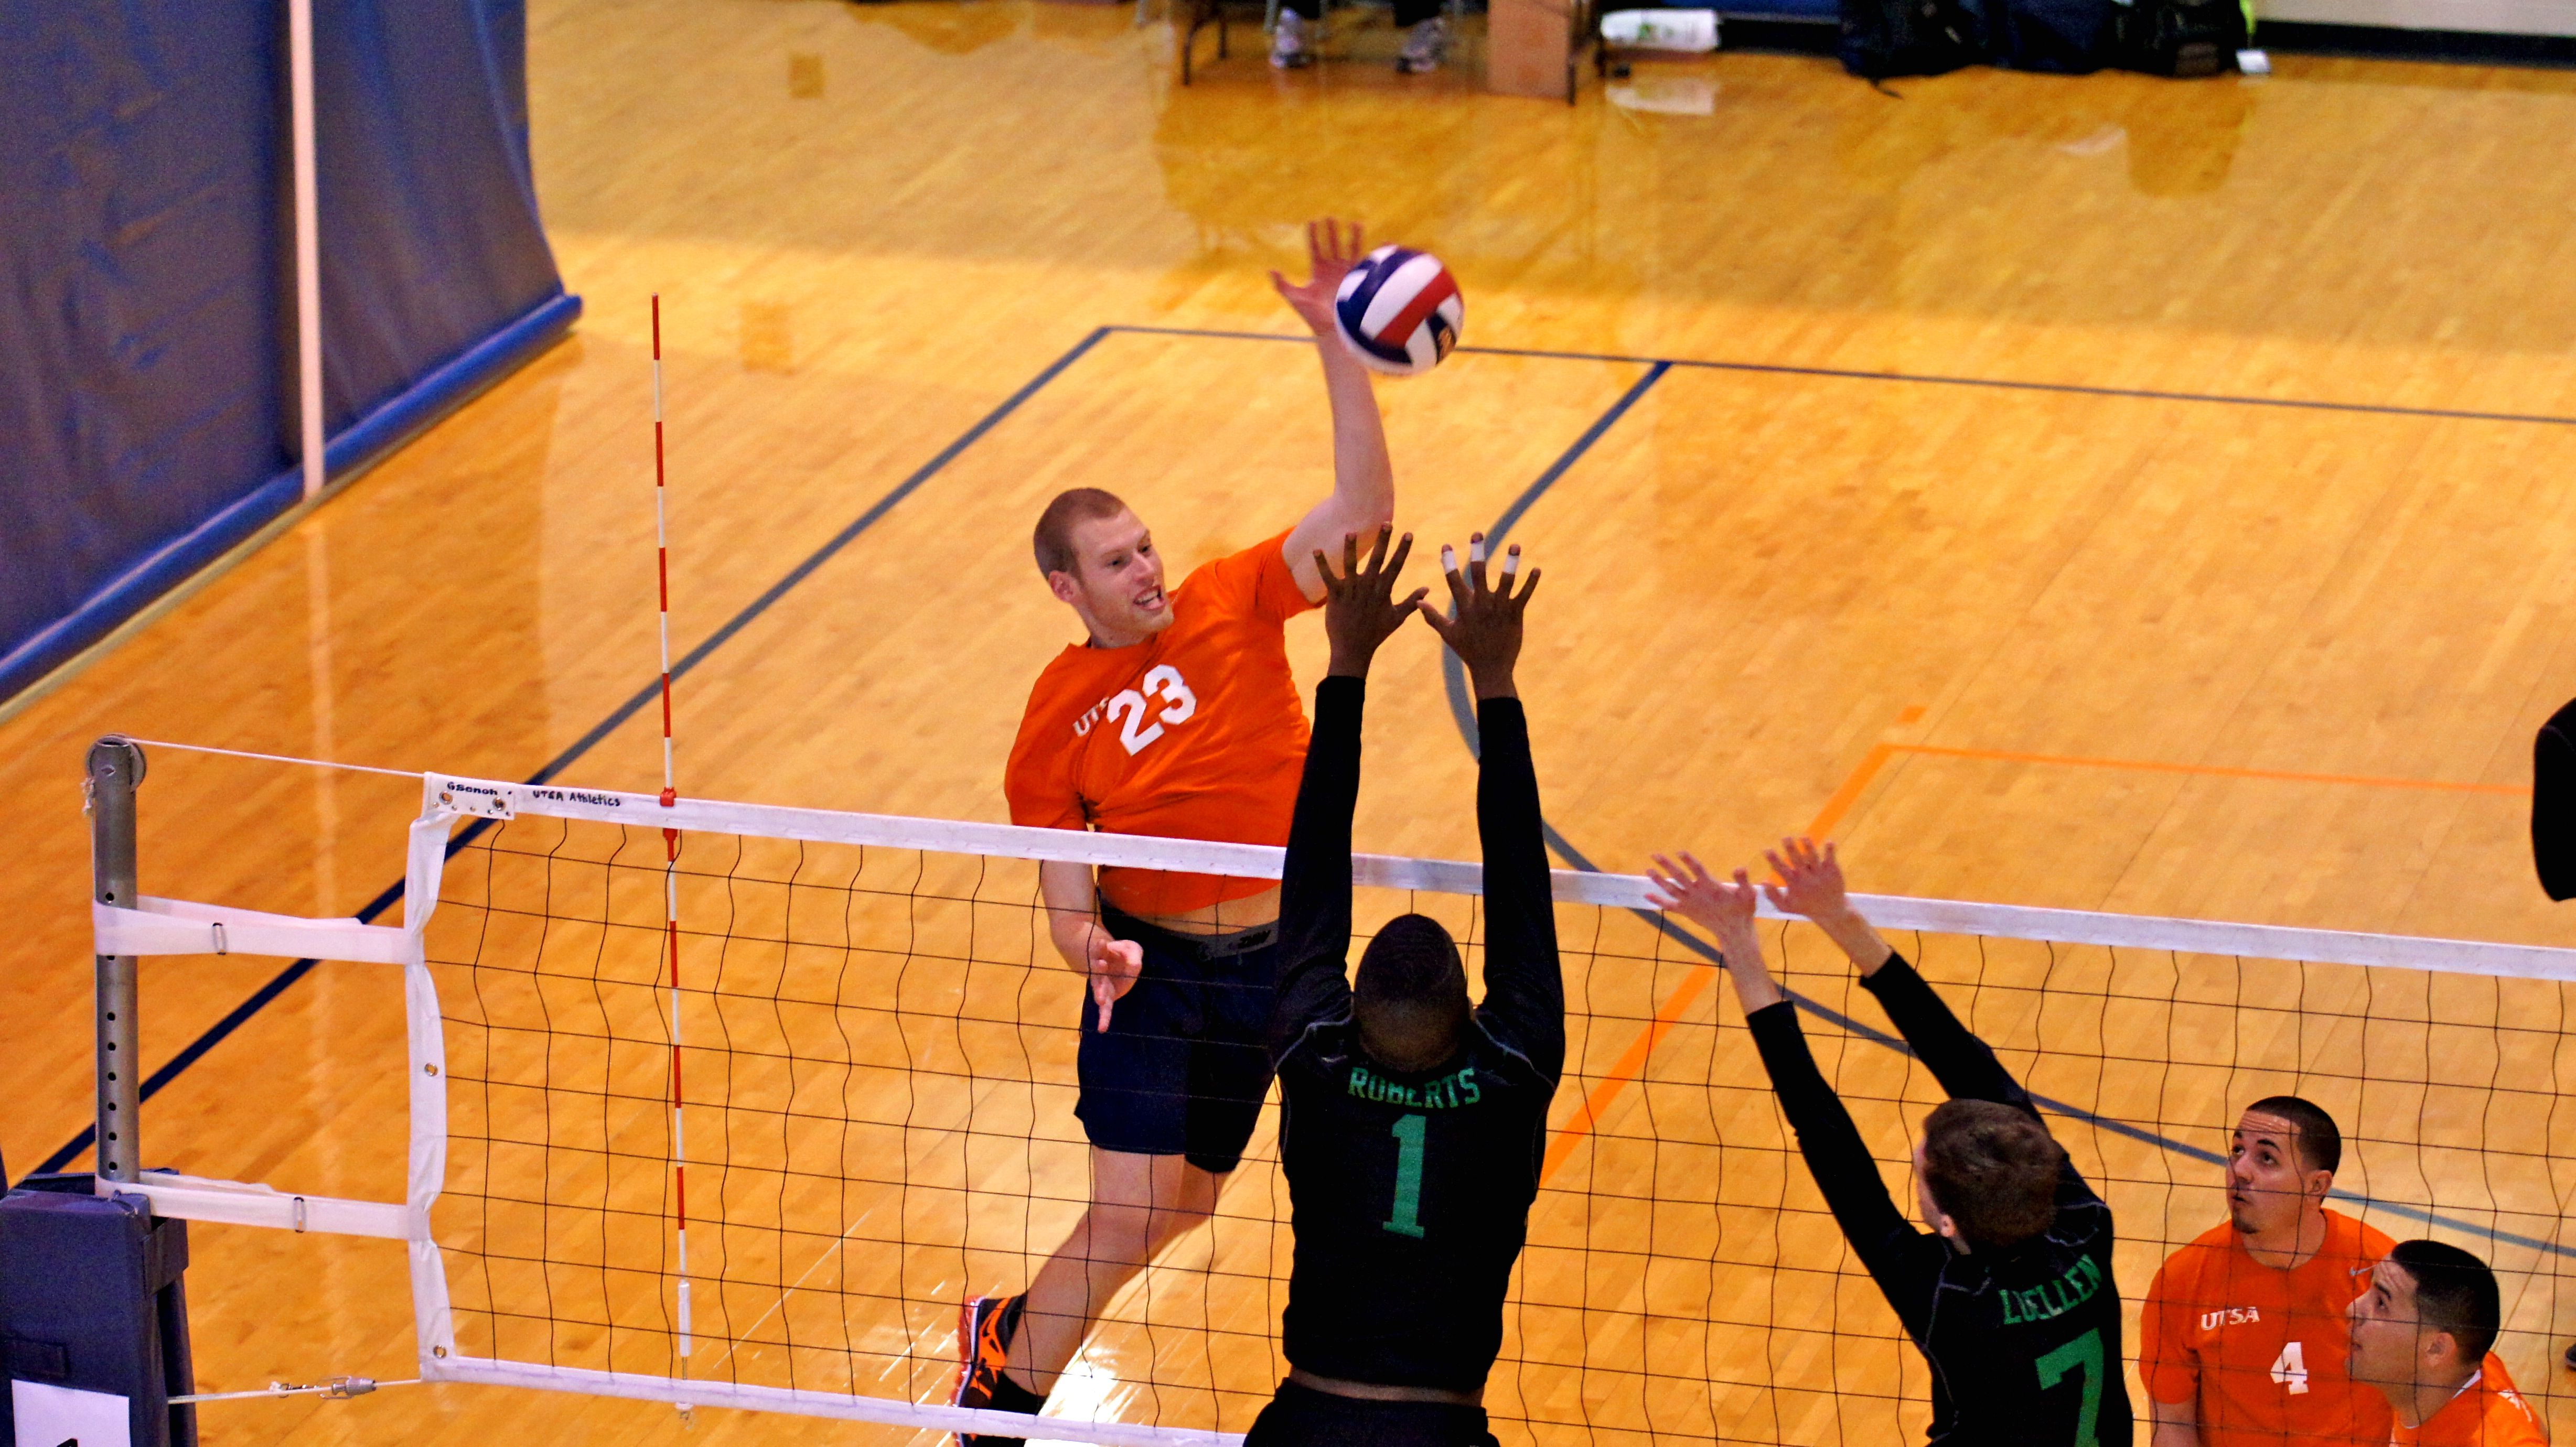 Siva Volleyball Tournament Hosted At Utsa Volleyball Tournaments Sports Clubs Intramurals